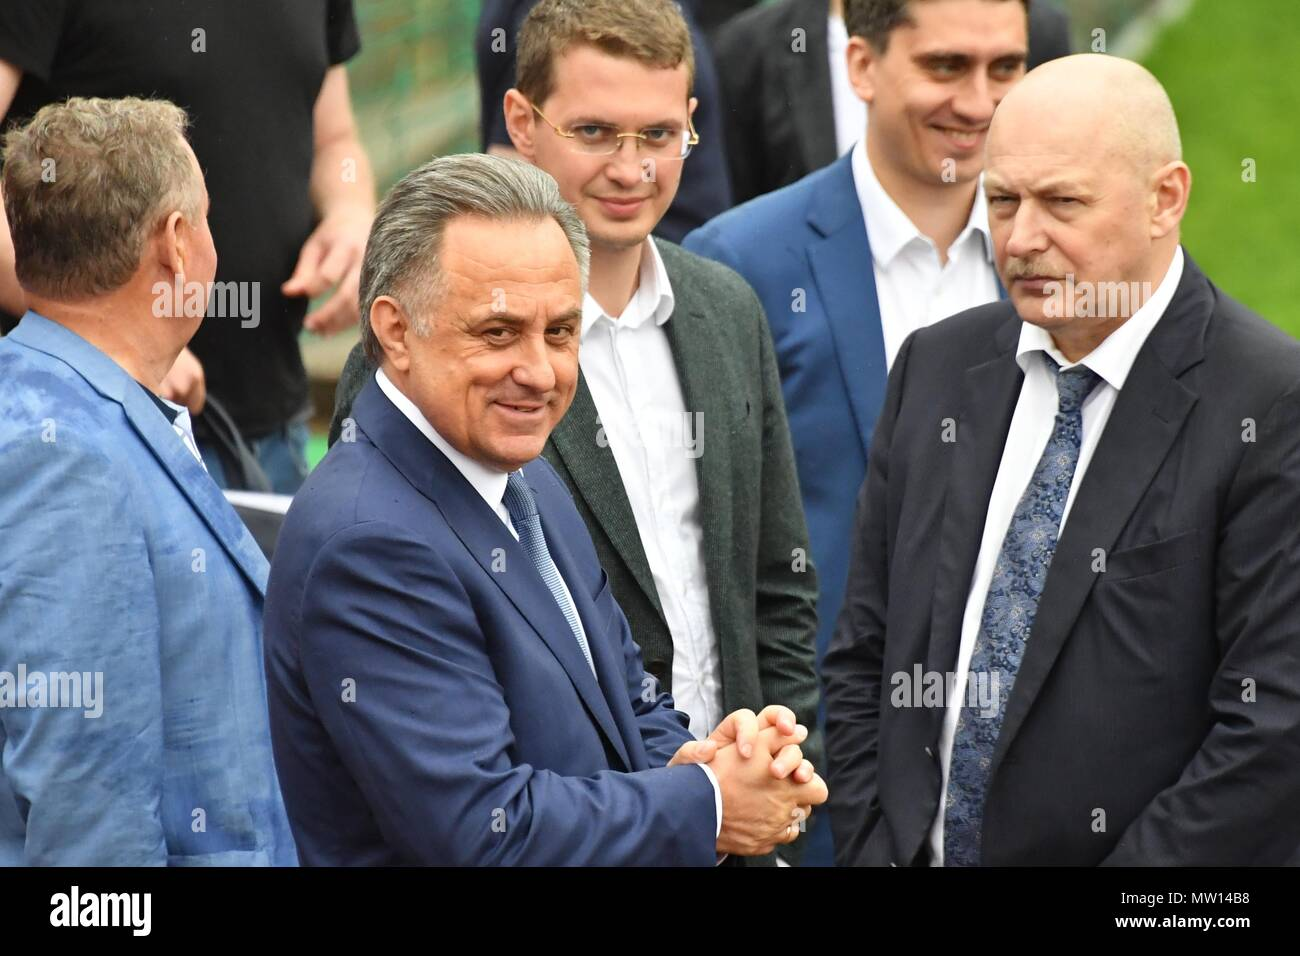 May 18, 2018. - Russia, Moscow Region, Novogorsk. - Russian national football team holds training session. In picture: President of the Russian Football Union, Deputy Prime Minister Vitaly Mutko (center). - Stock Image